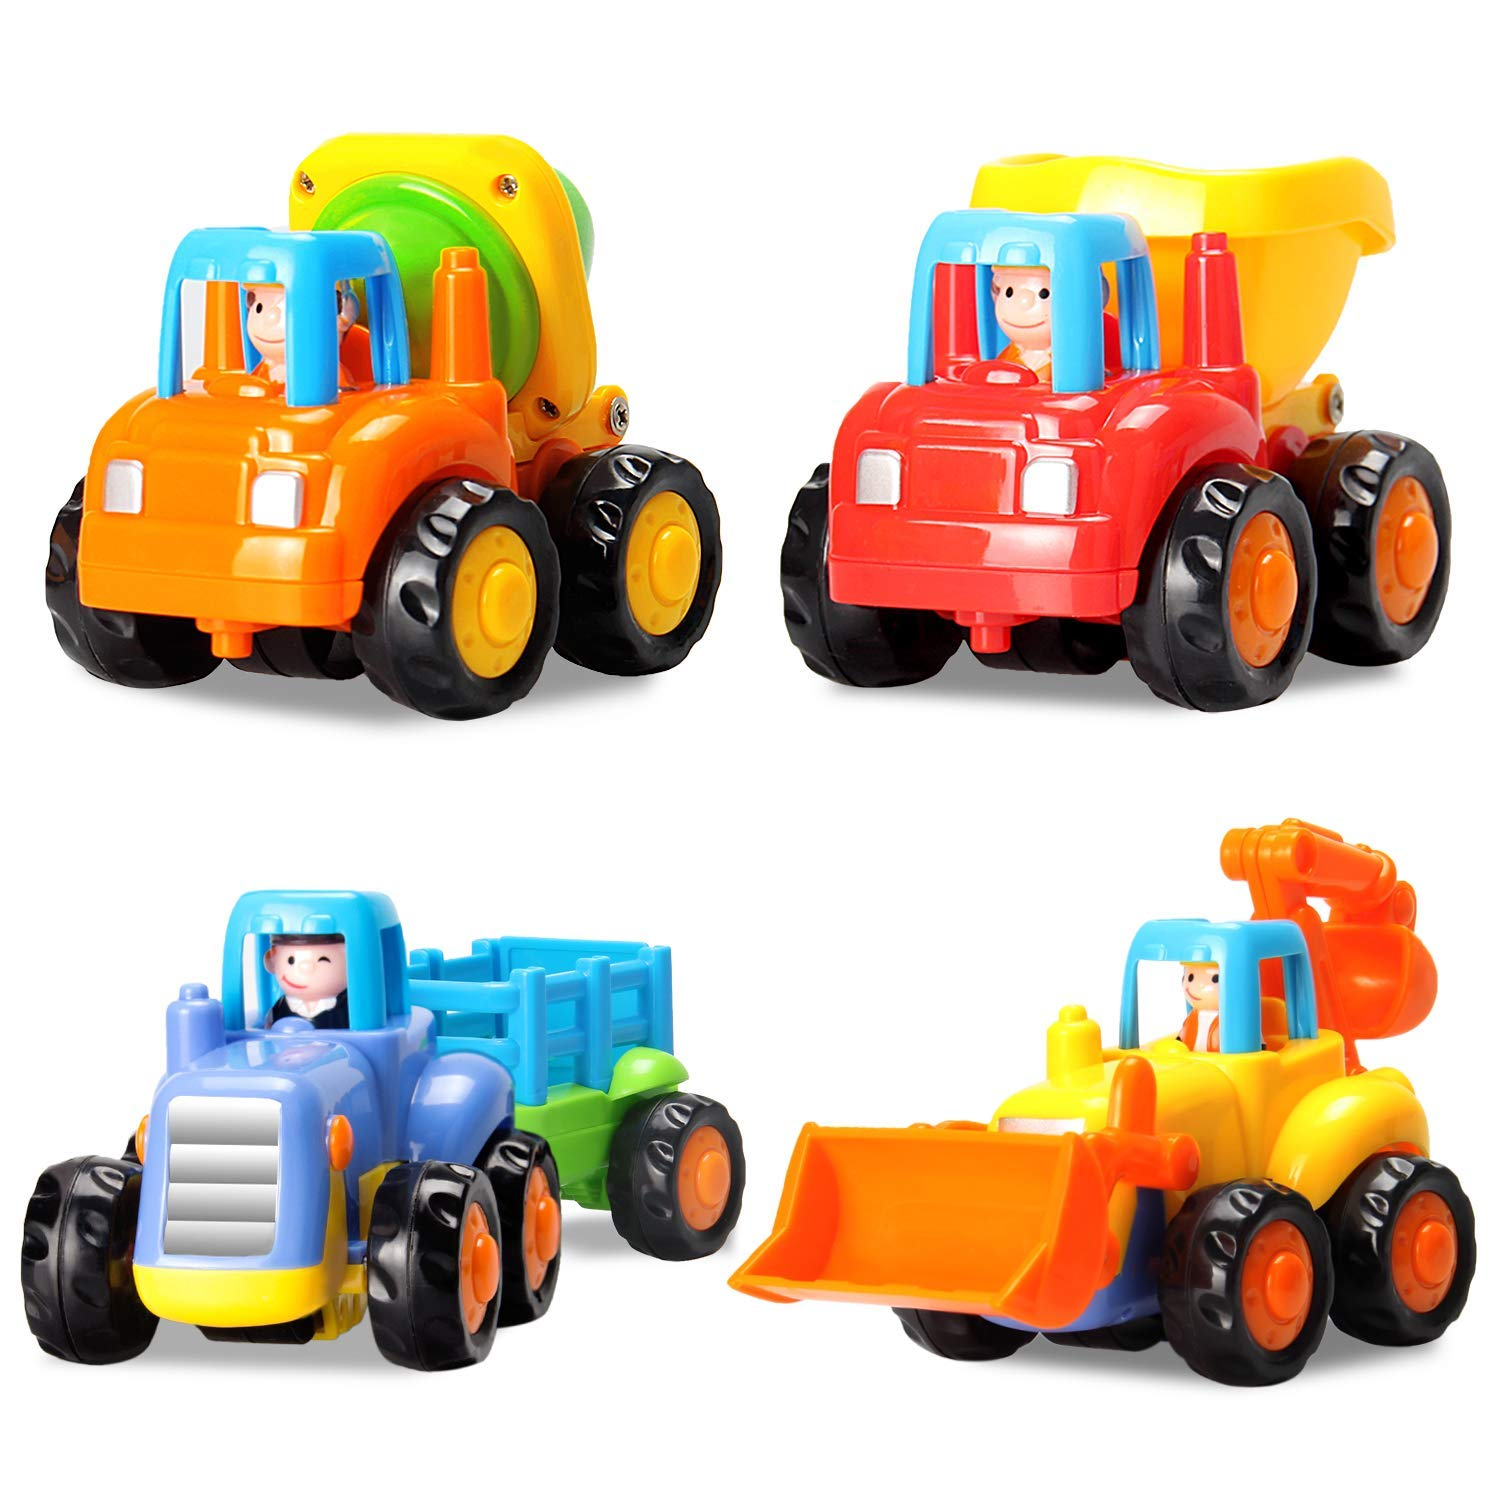 18e95def042a9 Get Quotations · HOMOF Baby Toys Push Go Friction Powered Car Toys Early  Educational Toddler oys Sets 4 PCS